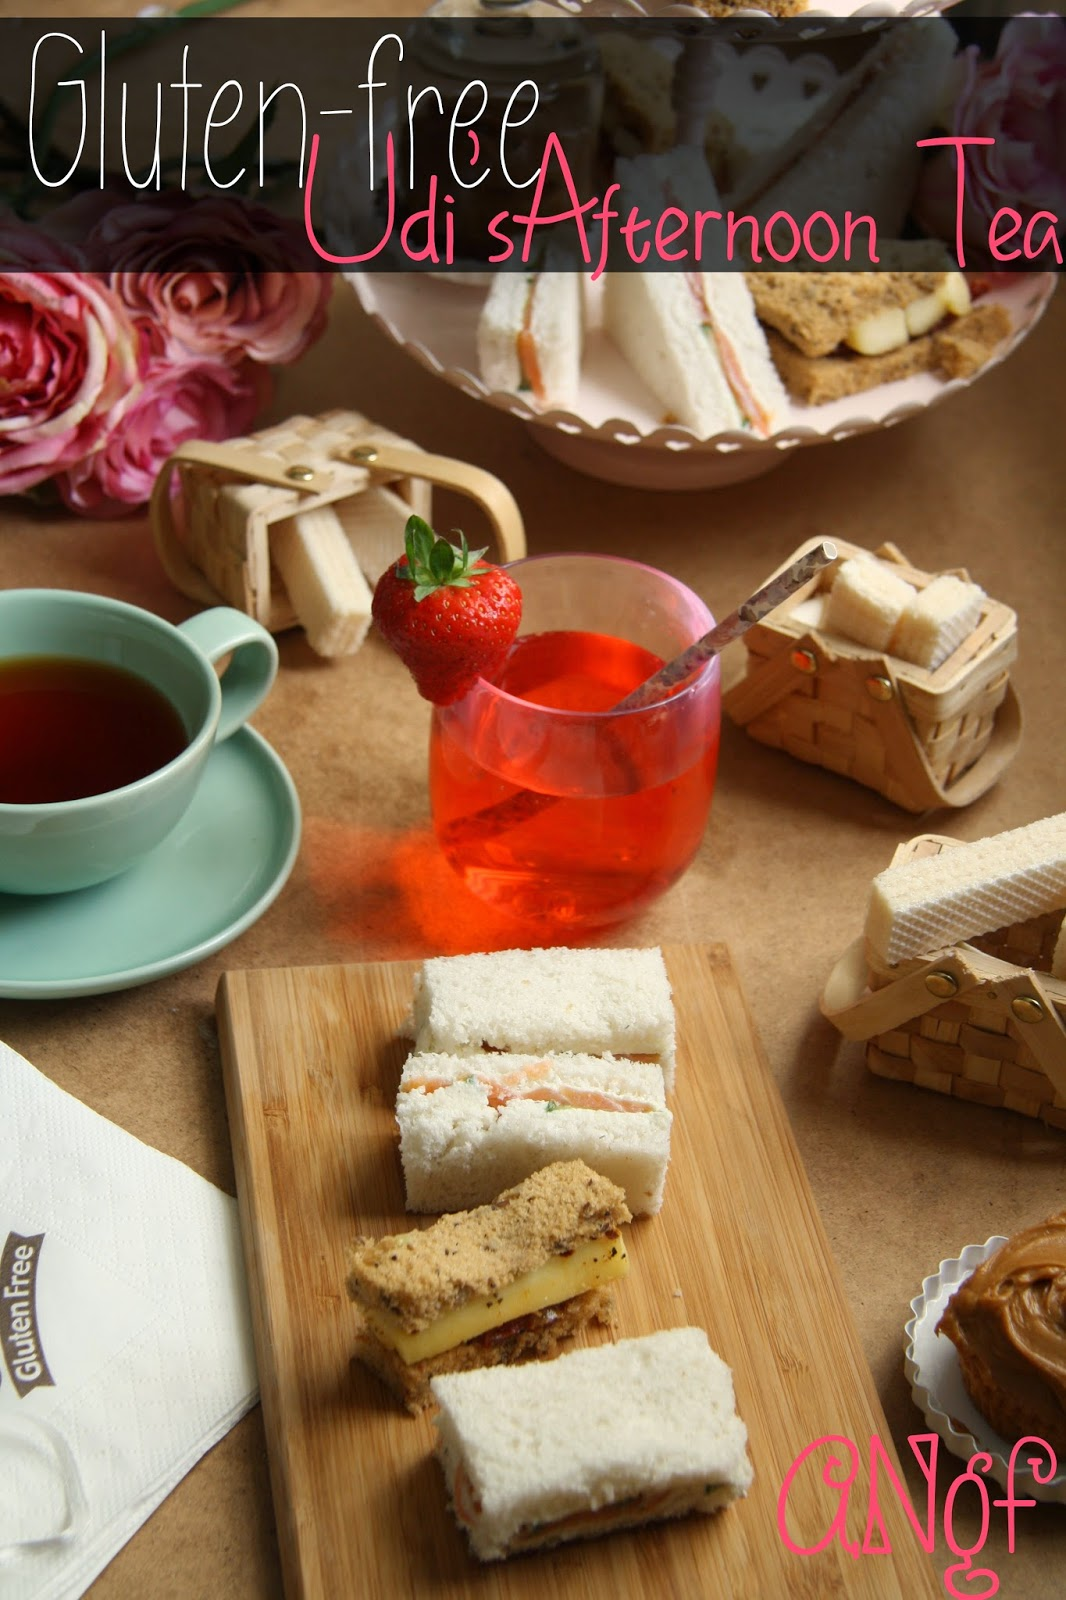 Gluten-free Afternoon Tea with Udi's from Anyonita-nibbles.co.uk